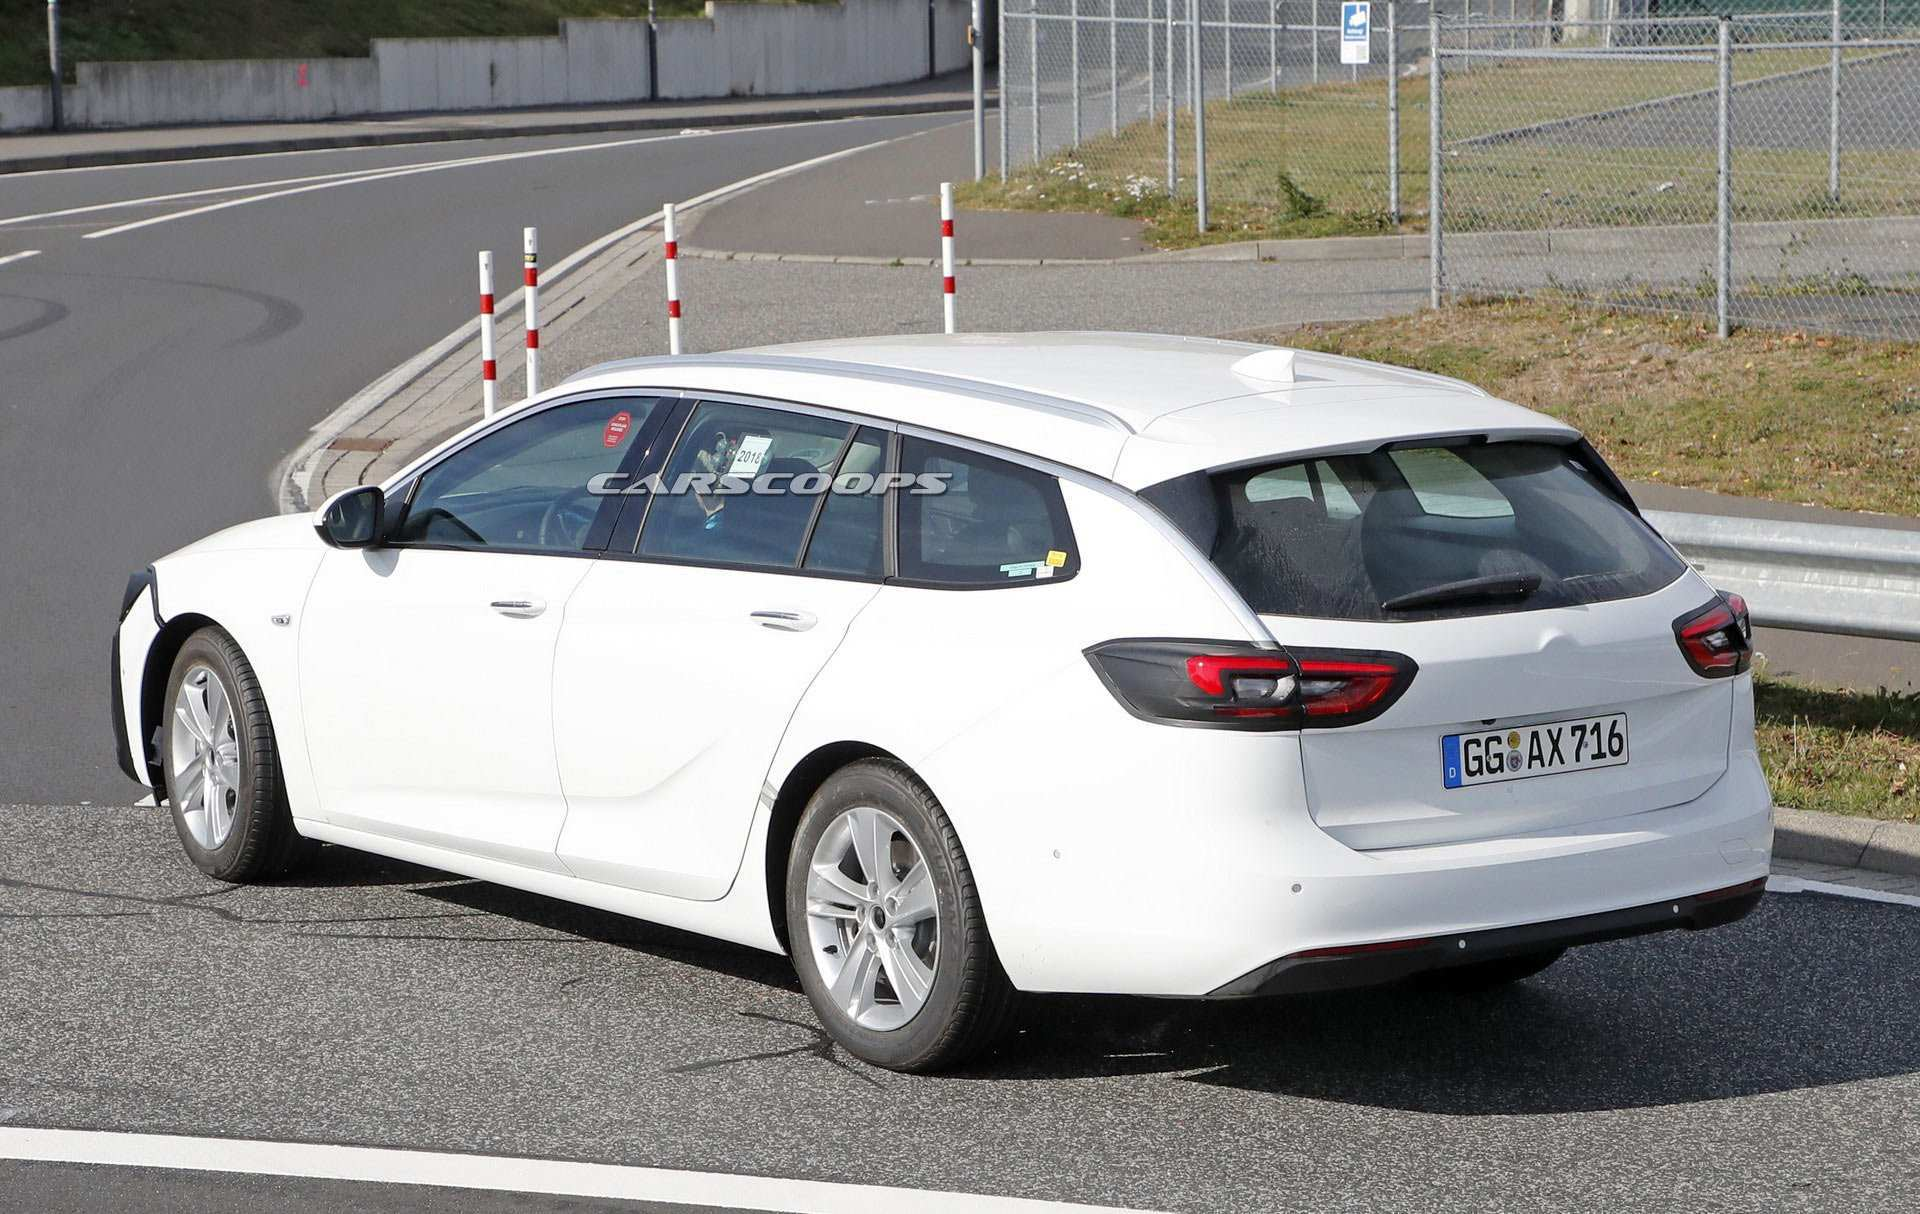 84 All New Opel Insignia 2020 Rumors for Opel Insignia 2020